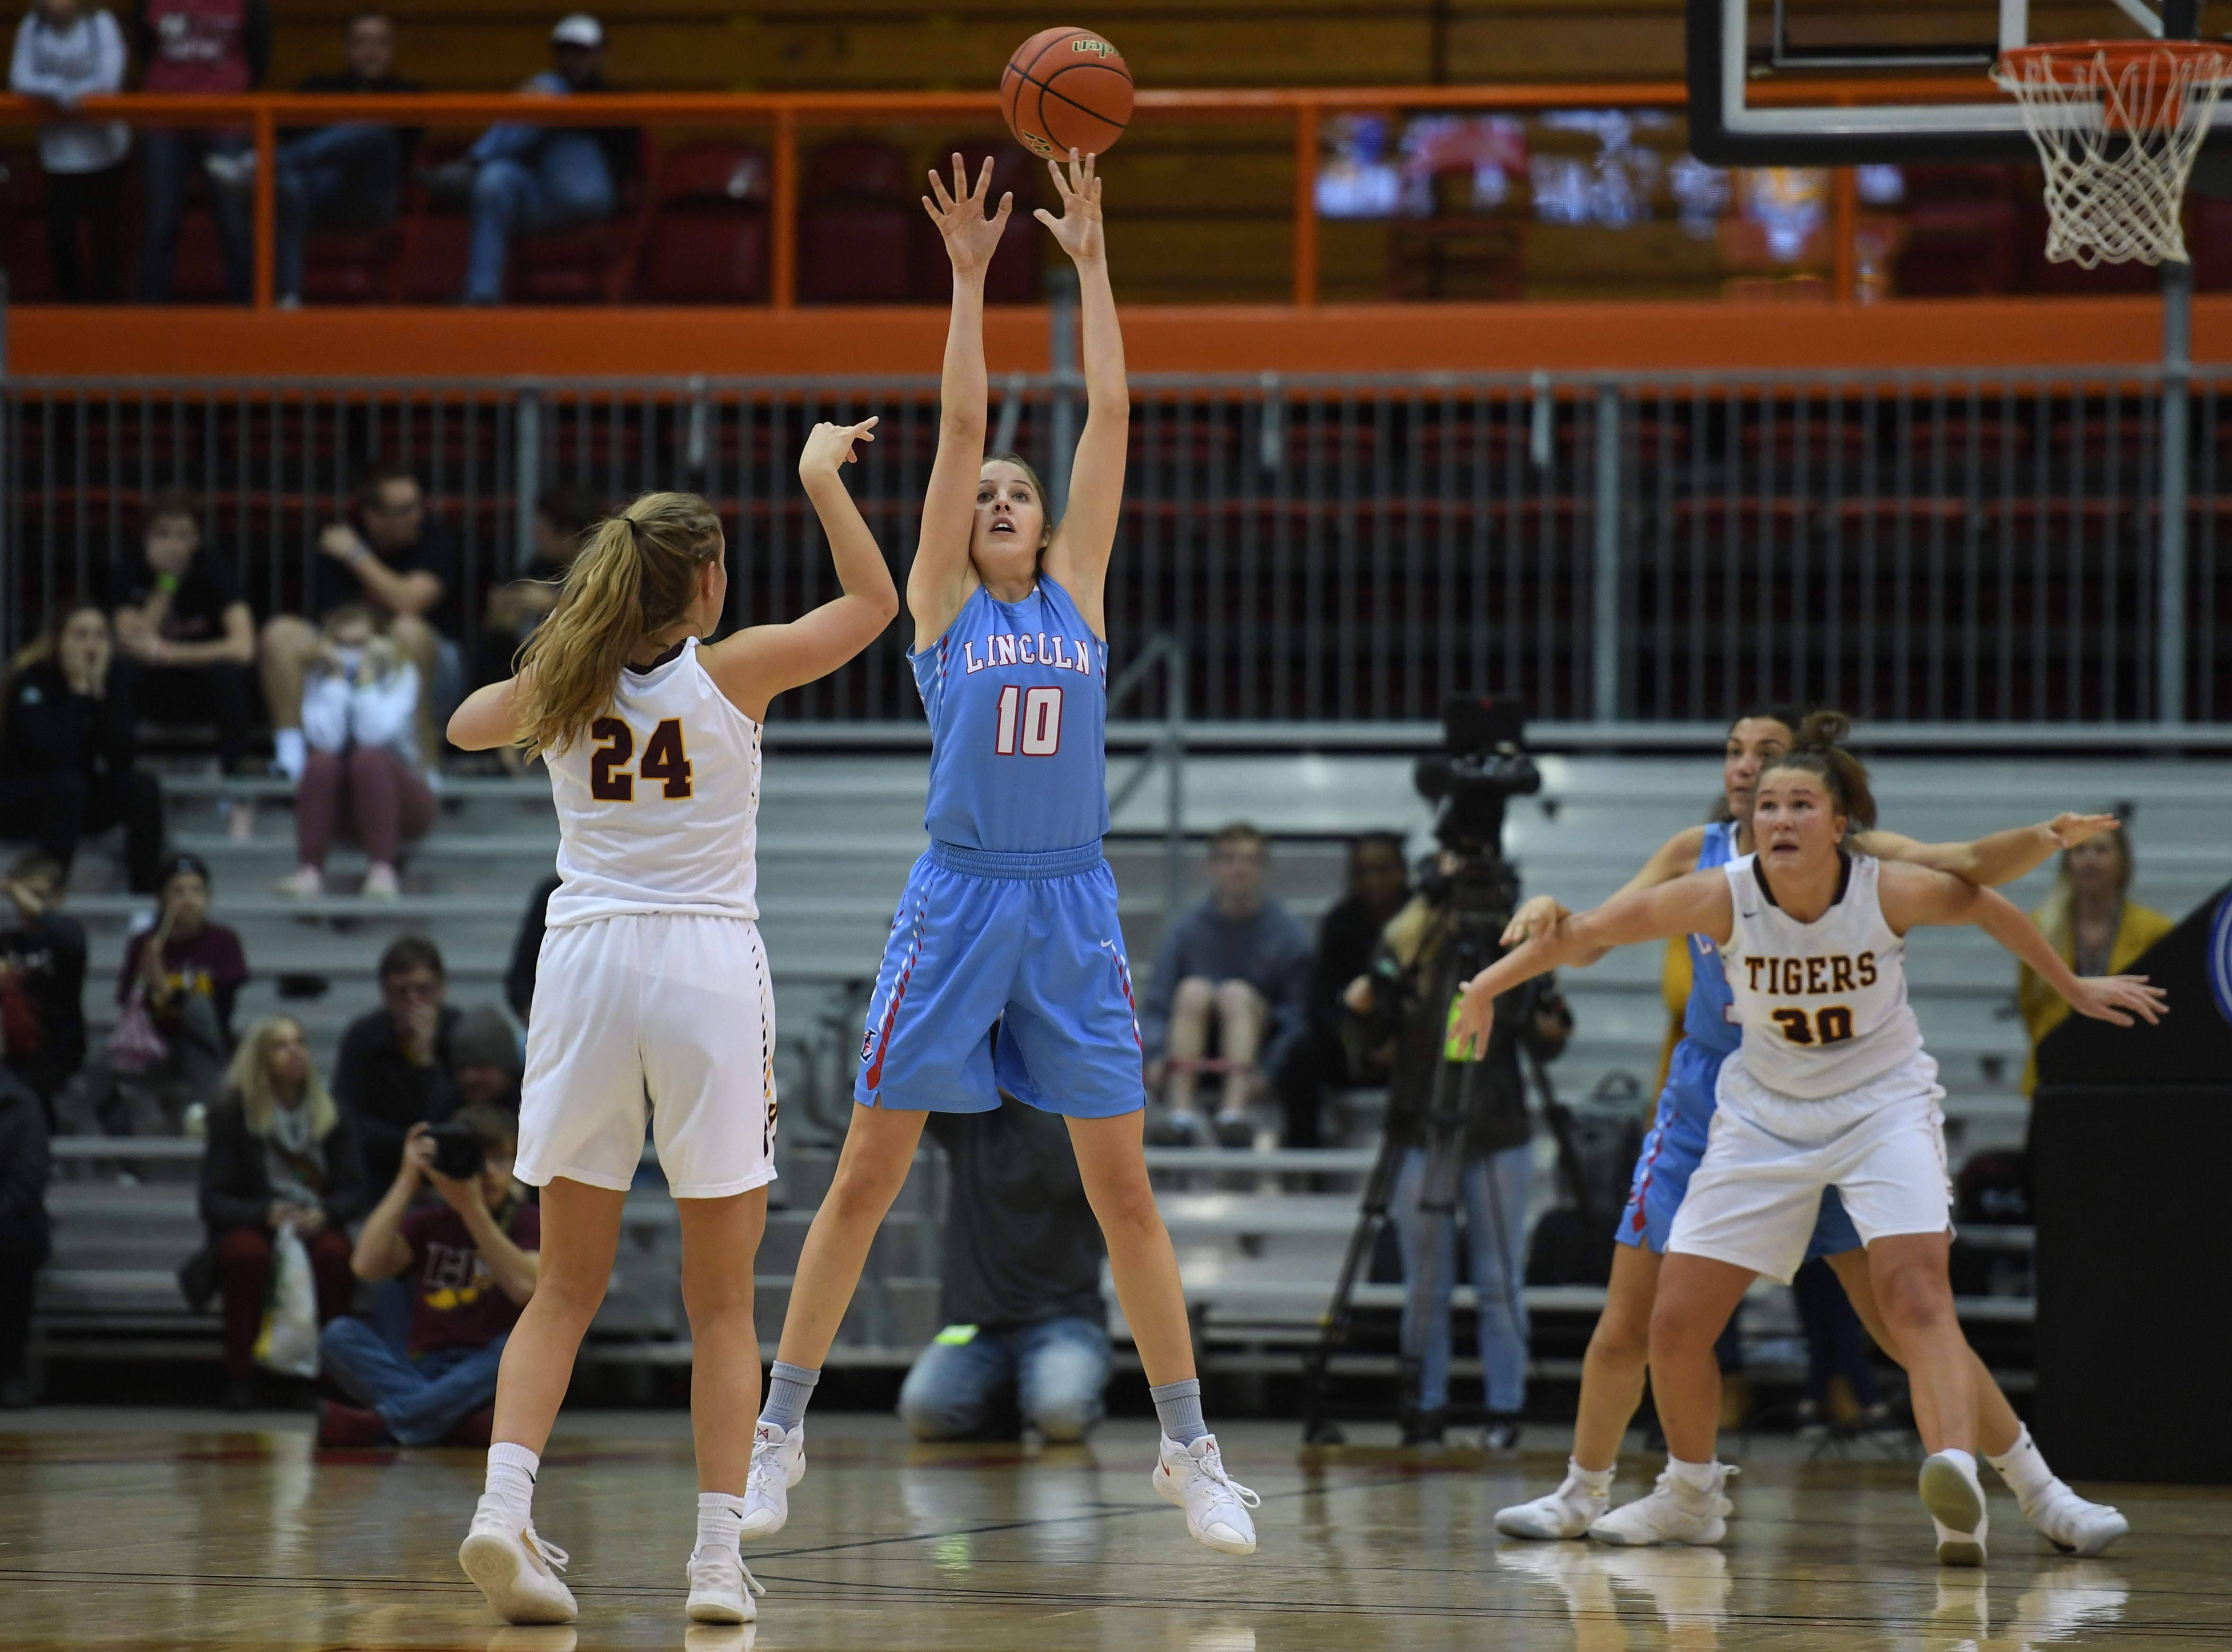 Lincoln's Morgan Hansen attempts to break up a pass between Harrisburg's Aby Phipps (24) and Jeniah Ugofsky during the game in the Class AA semifinals Thursday, March 15, in Rapid City.